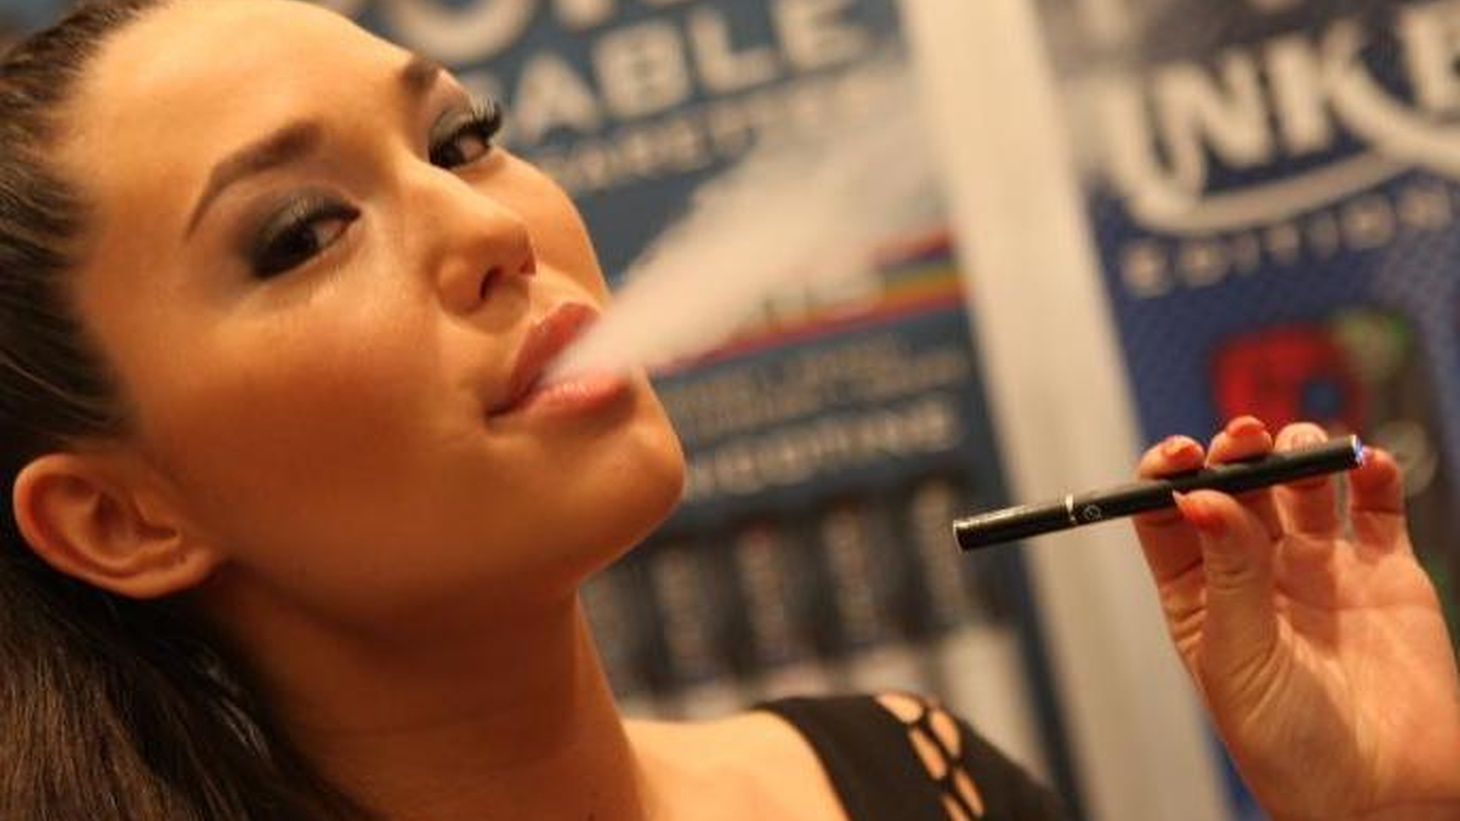 LA bans e-cigarettes, a judge claims fraud in the $9.5B settlement against Chevron, crowdsourcing science, and the historical (in)accuracy of the '300' sequel.